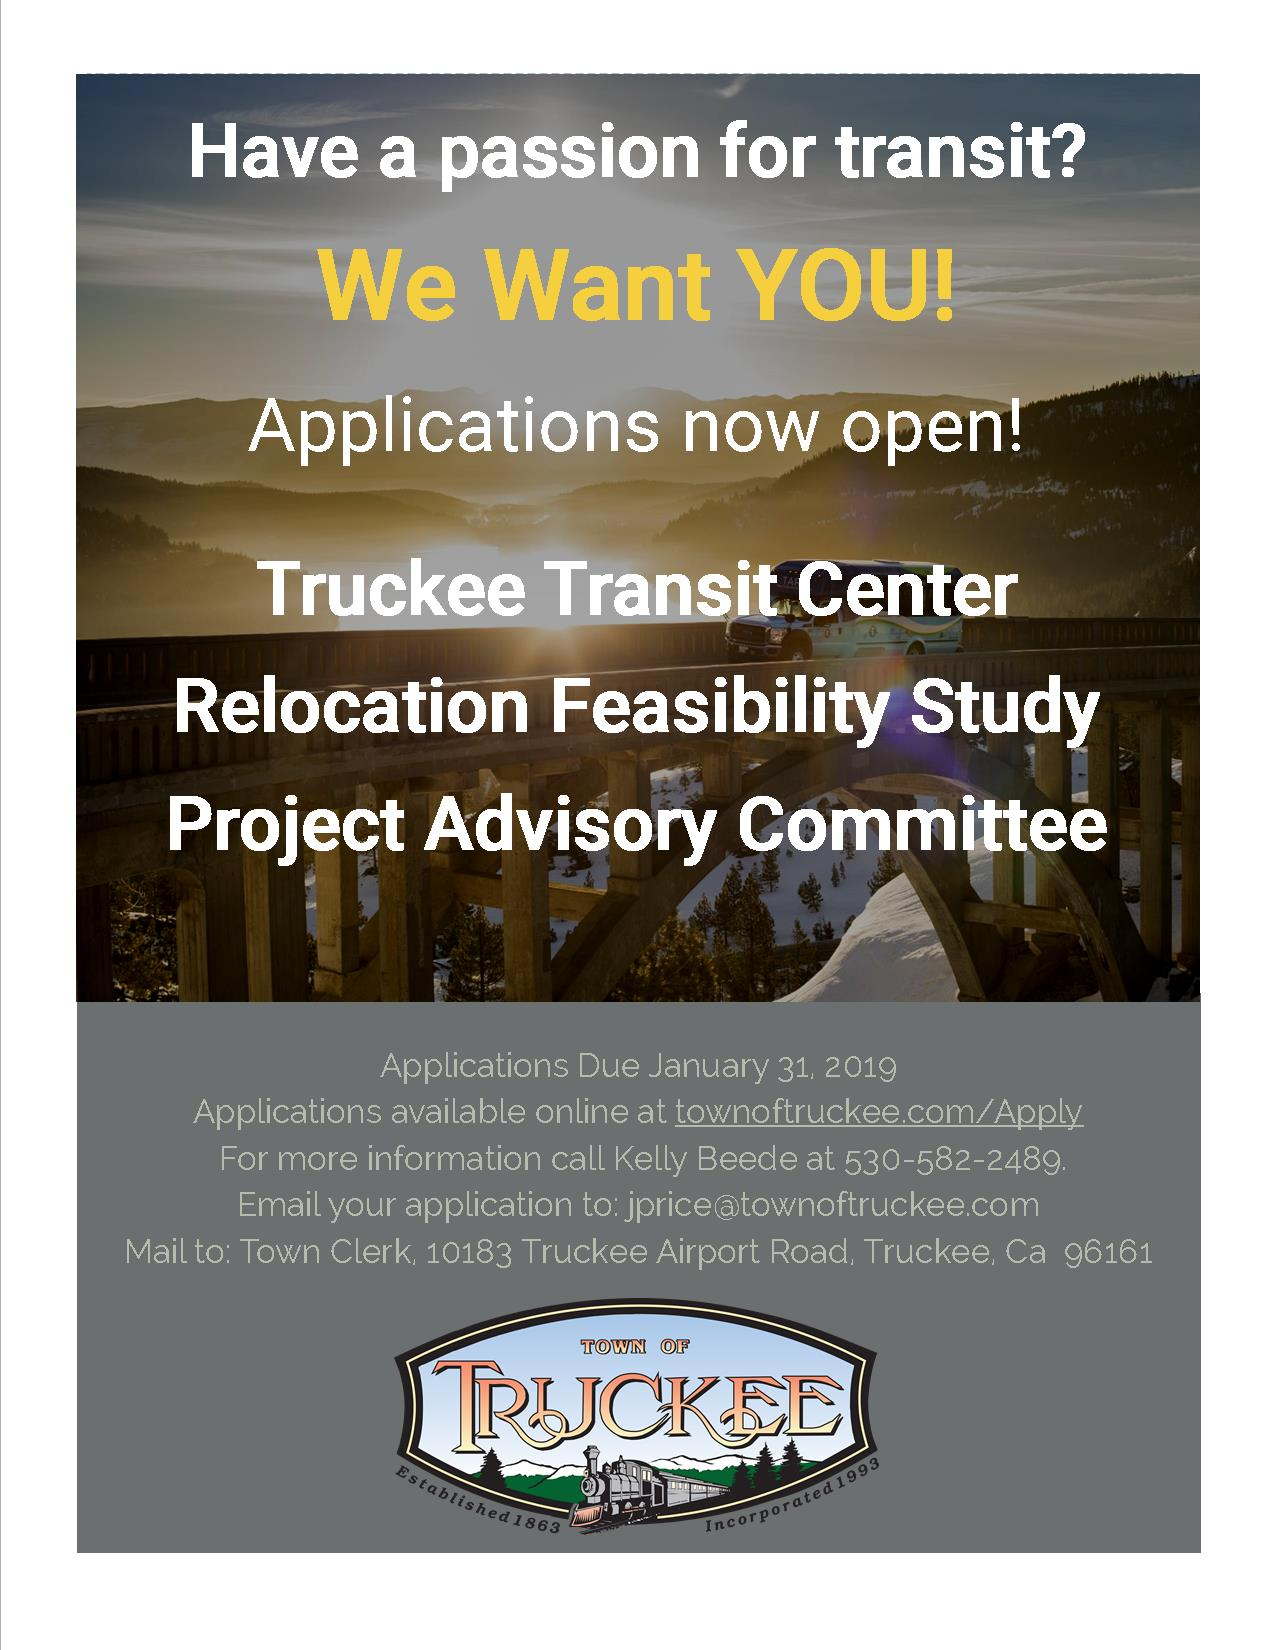 Applications Open for Transit Center Relocation Feasibility Study Project Advisory Committee.